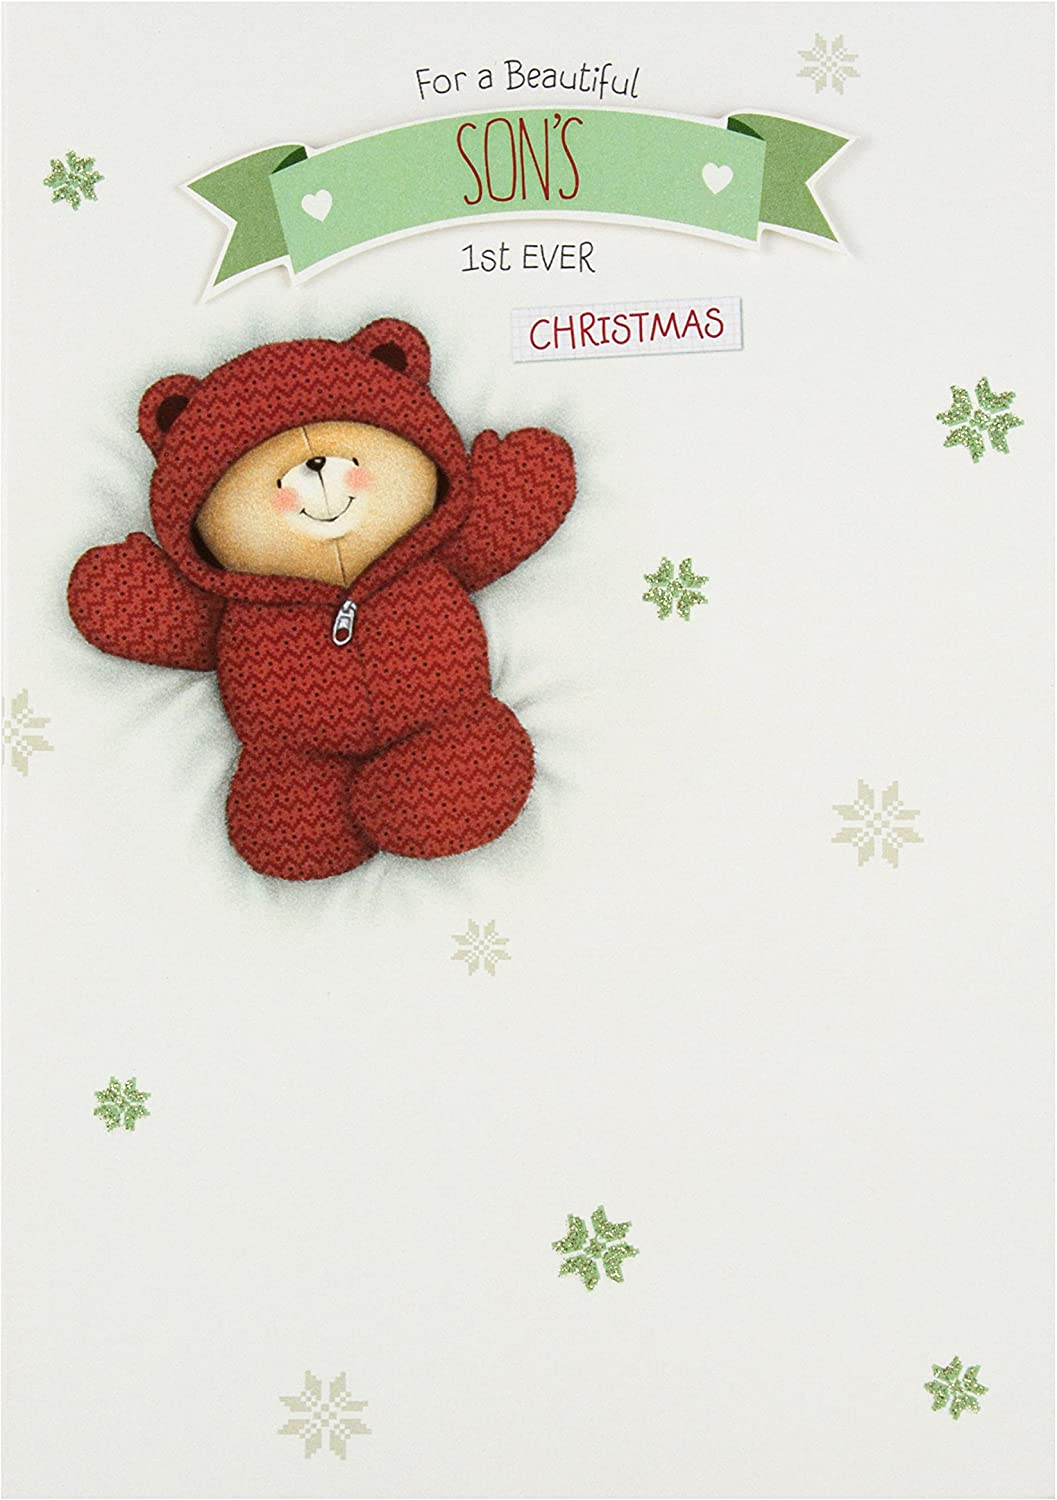 HALLMARK FOREVER FRIENDS YOU/'VE A NEW GRANDSON NEW BABY CARD